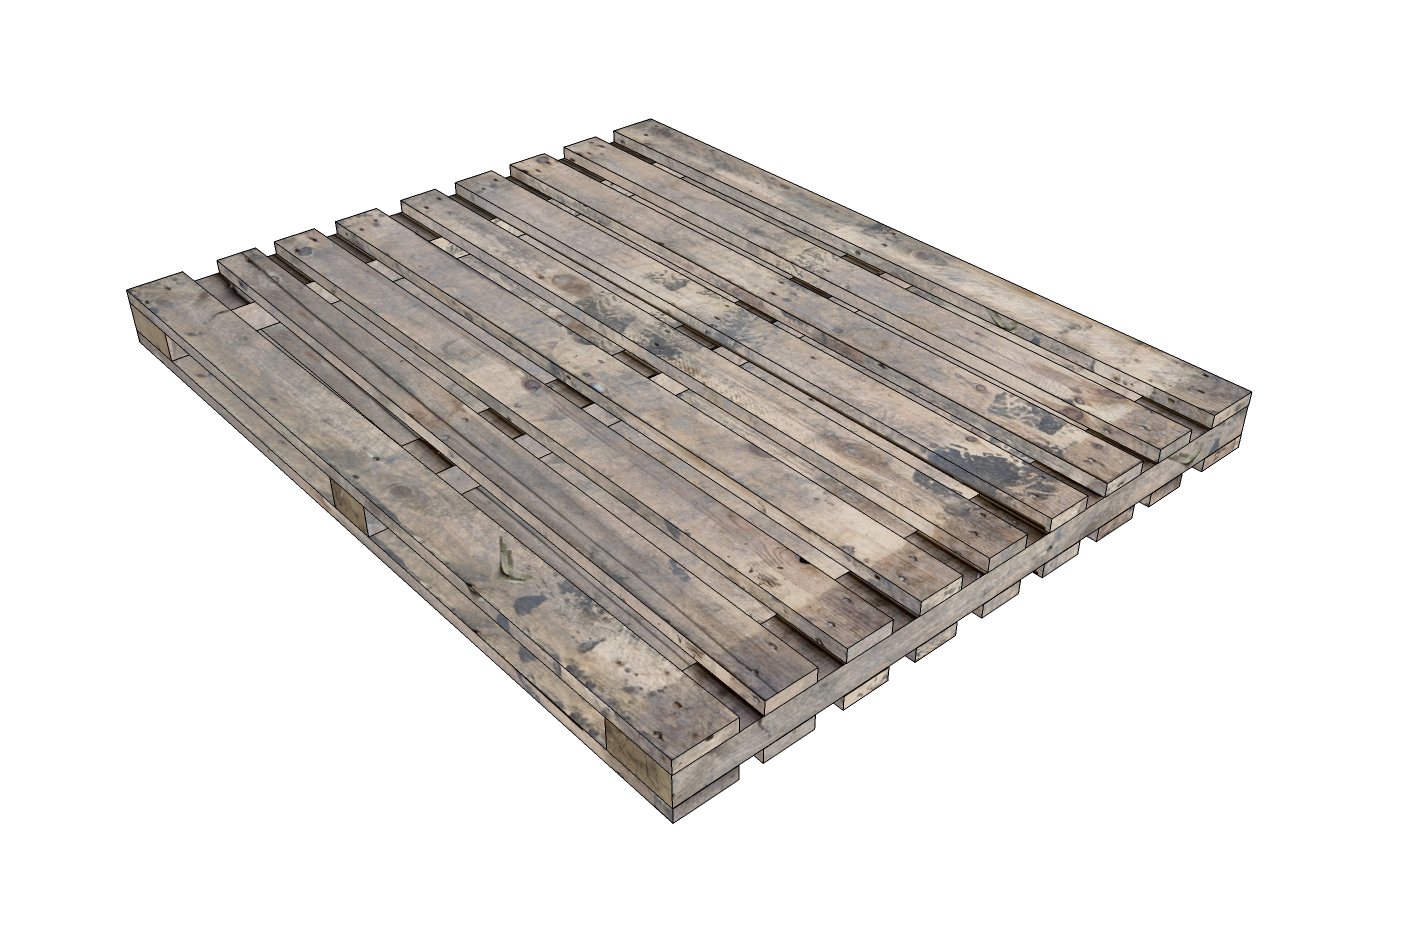 3-D Design and Engineering Tool for Wood Pallets